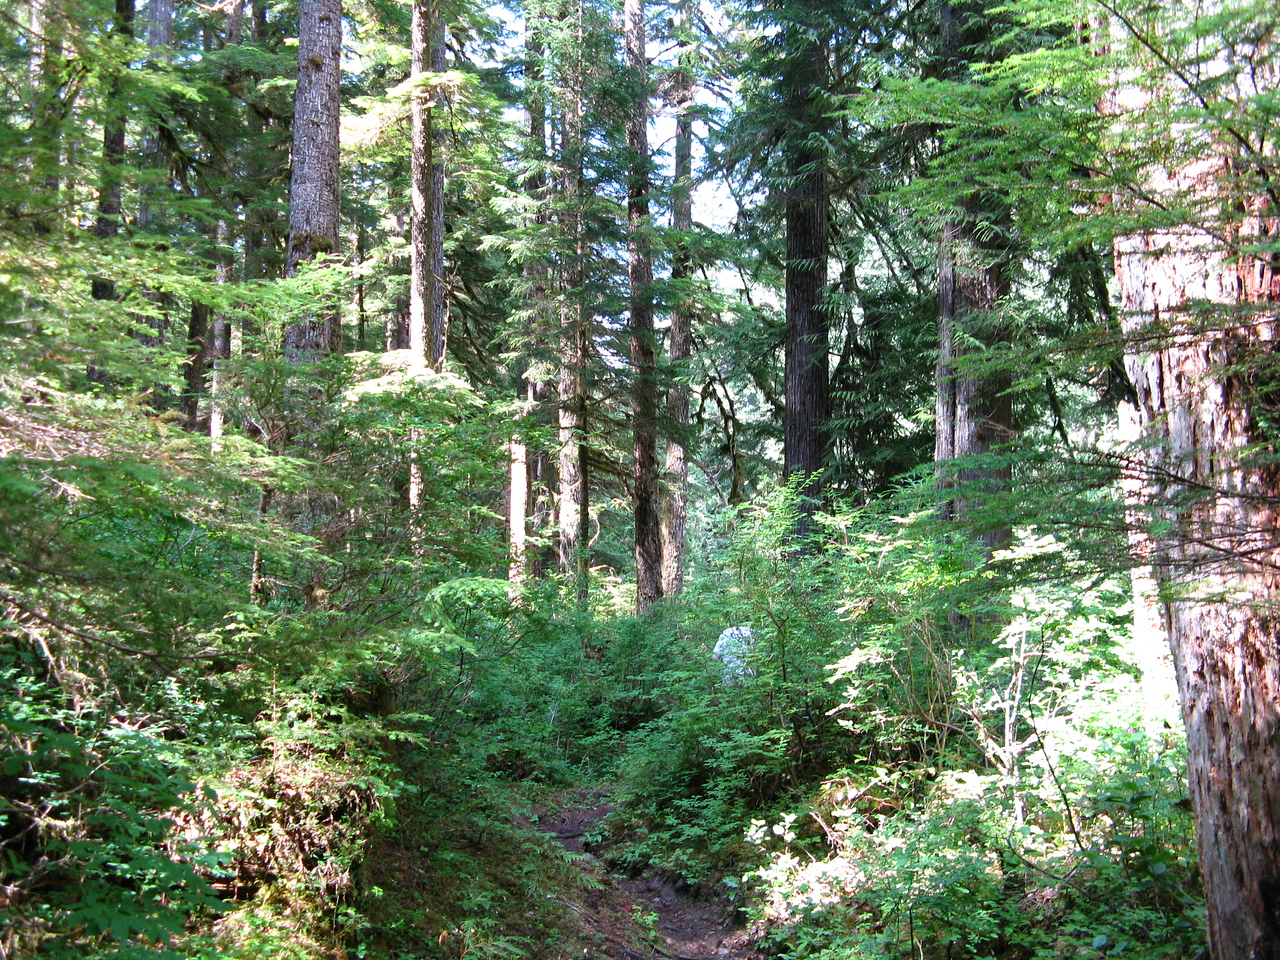 The Lovers Lane Trail was more rugged than the trail on the east side of the river.